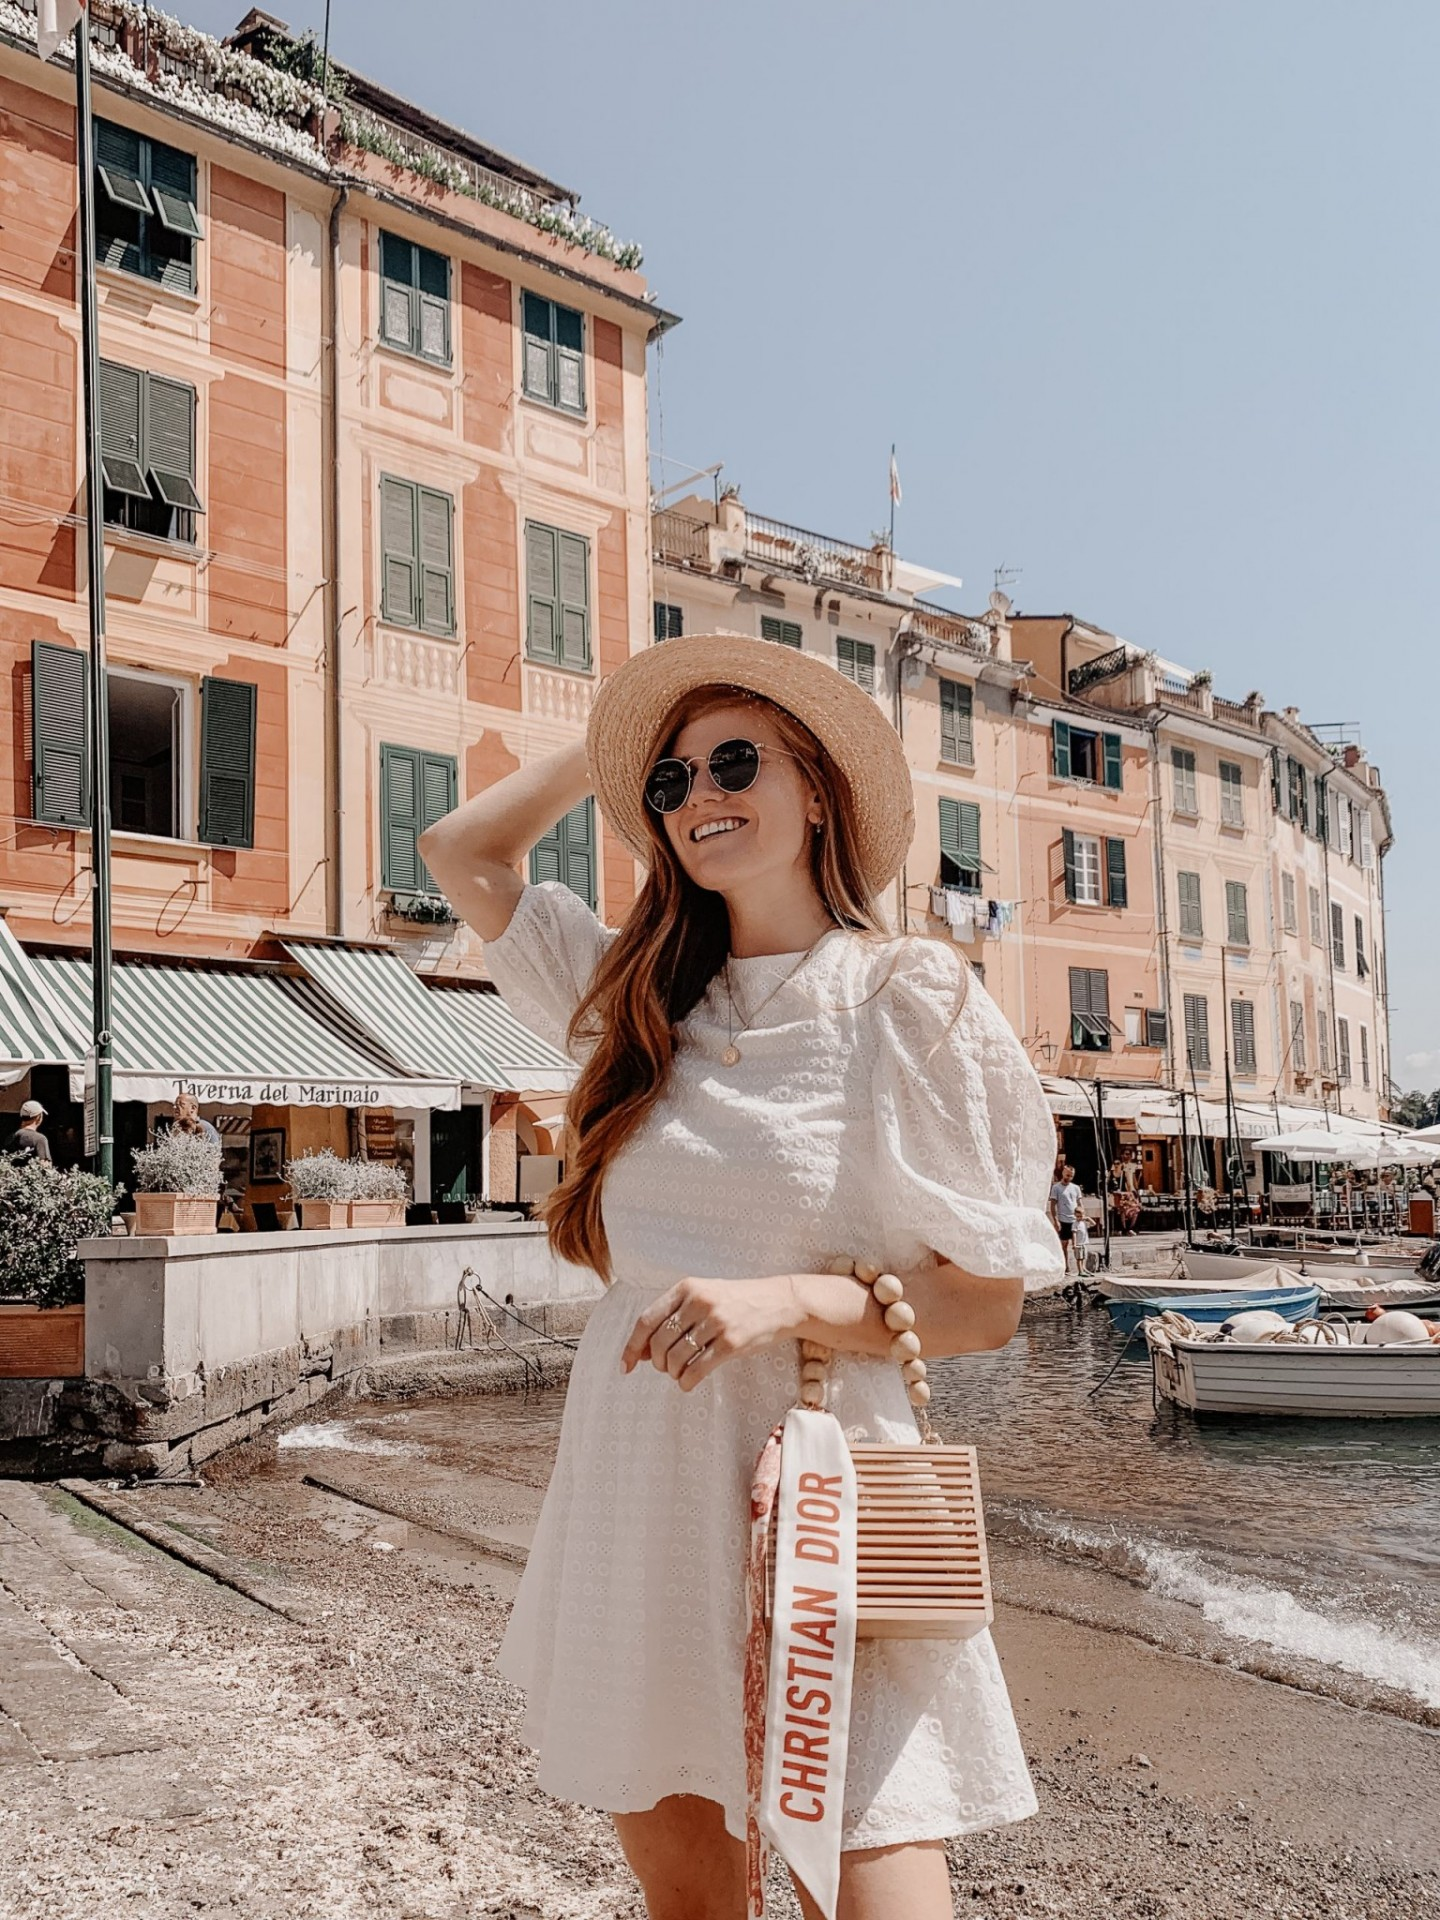 Lifestyle blogger Mollie Moore shares a Portofino Travel Guide | Travel Guide: Best Things to do in Portofino Italy by popular international travel blogger, Mollie Moore: image of a woman standing by the ocean in Portofino Italy.